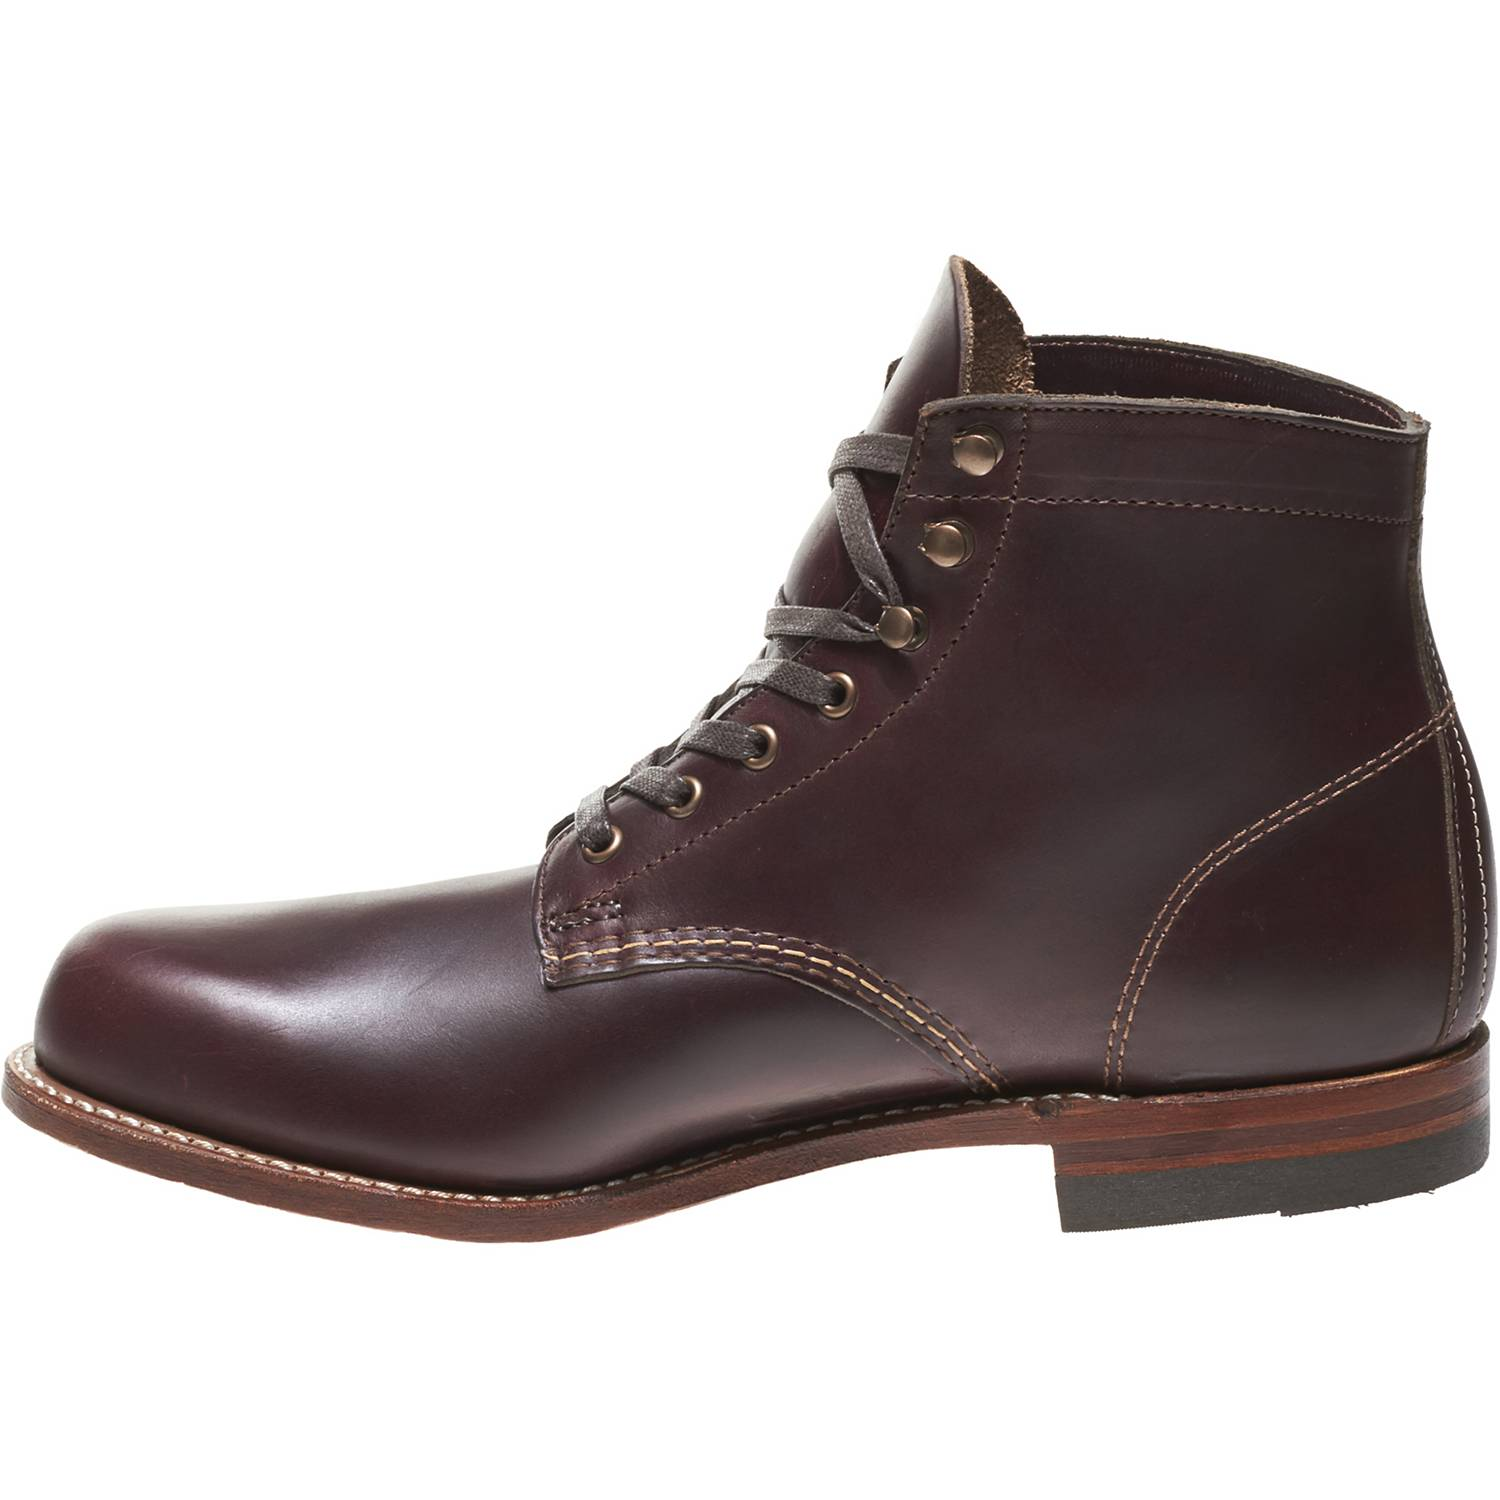 Wolverine-1000-Mile-Men-039-s-Leather-Boots-Cordovan-8-Black-Brown-Rust thumbnail 13